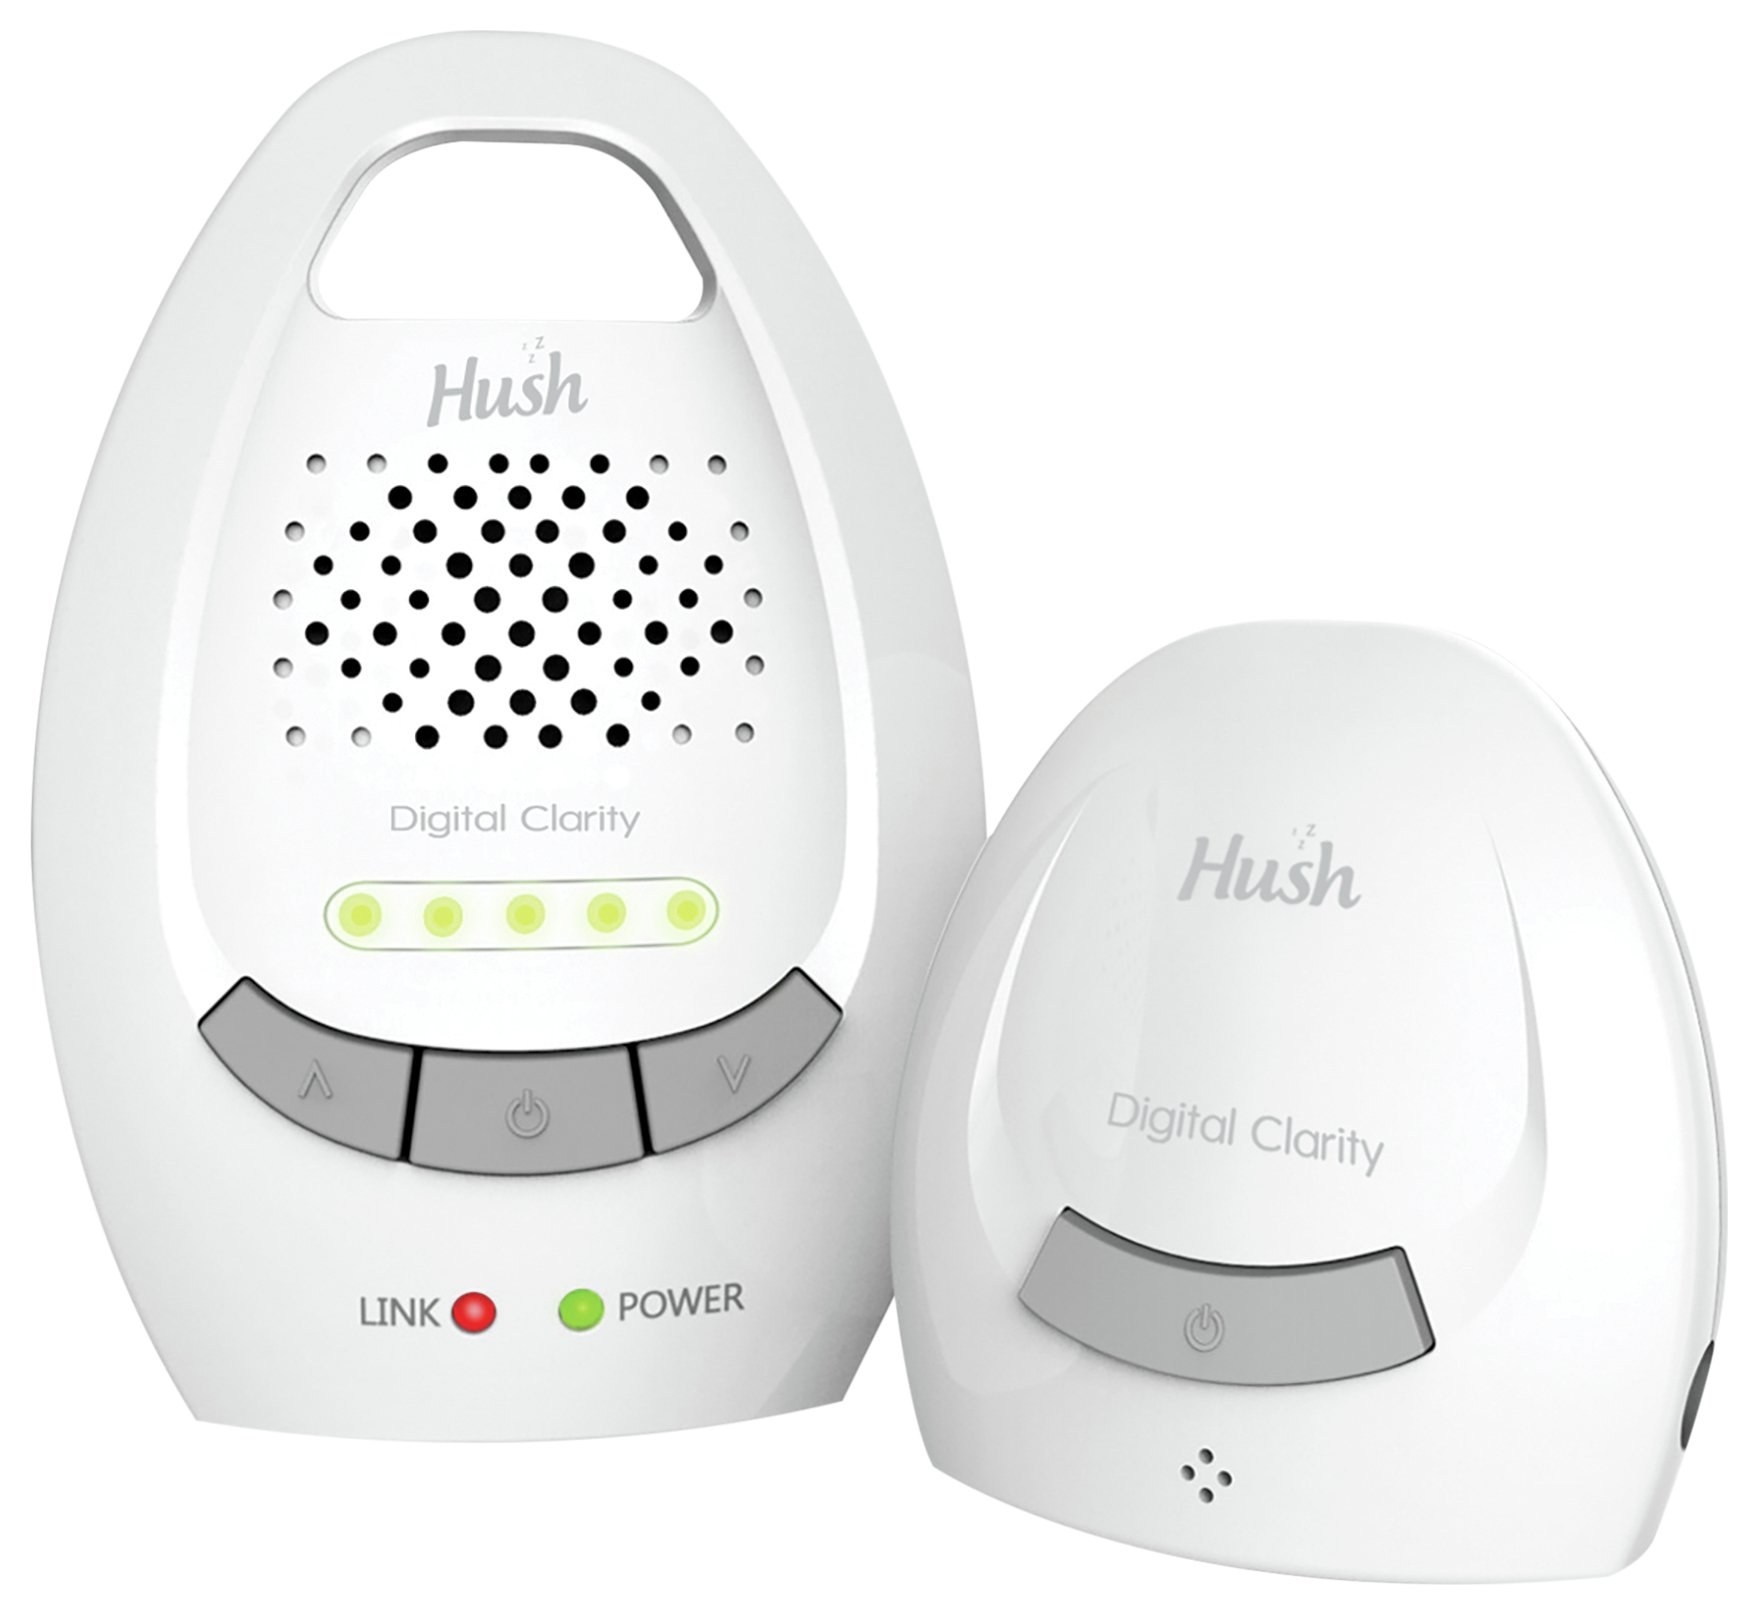 Image of Hush Freedom Advanced Digital Baby Monitor.